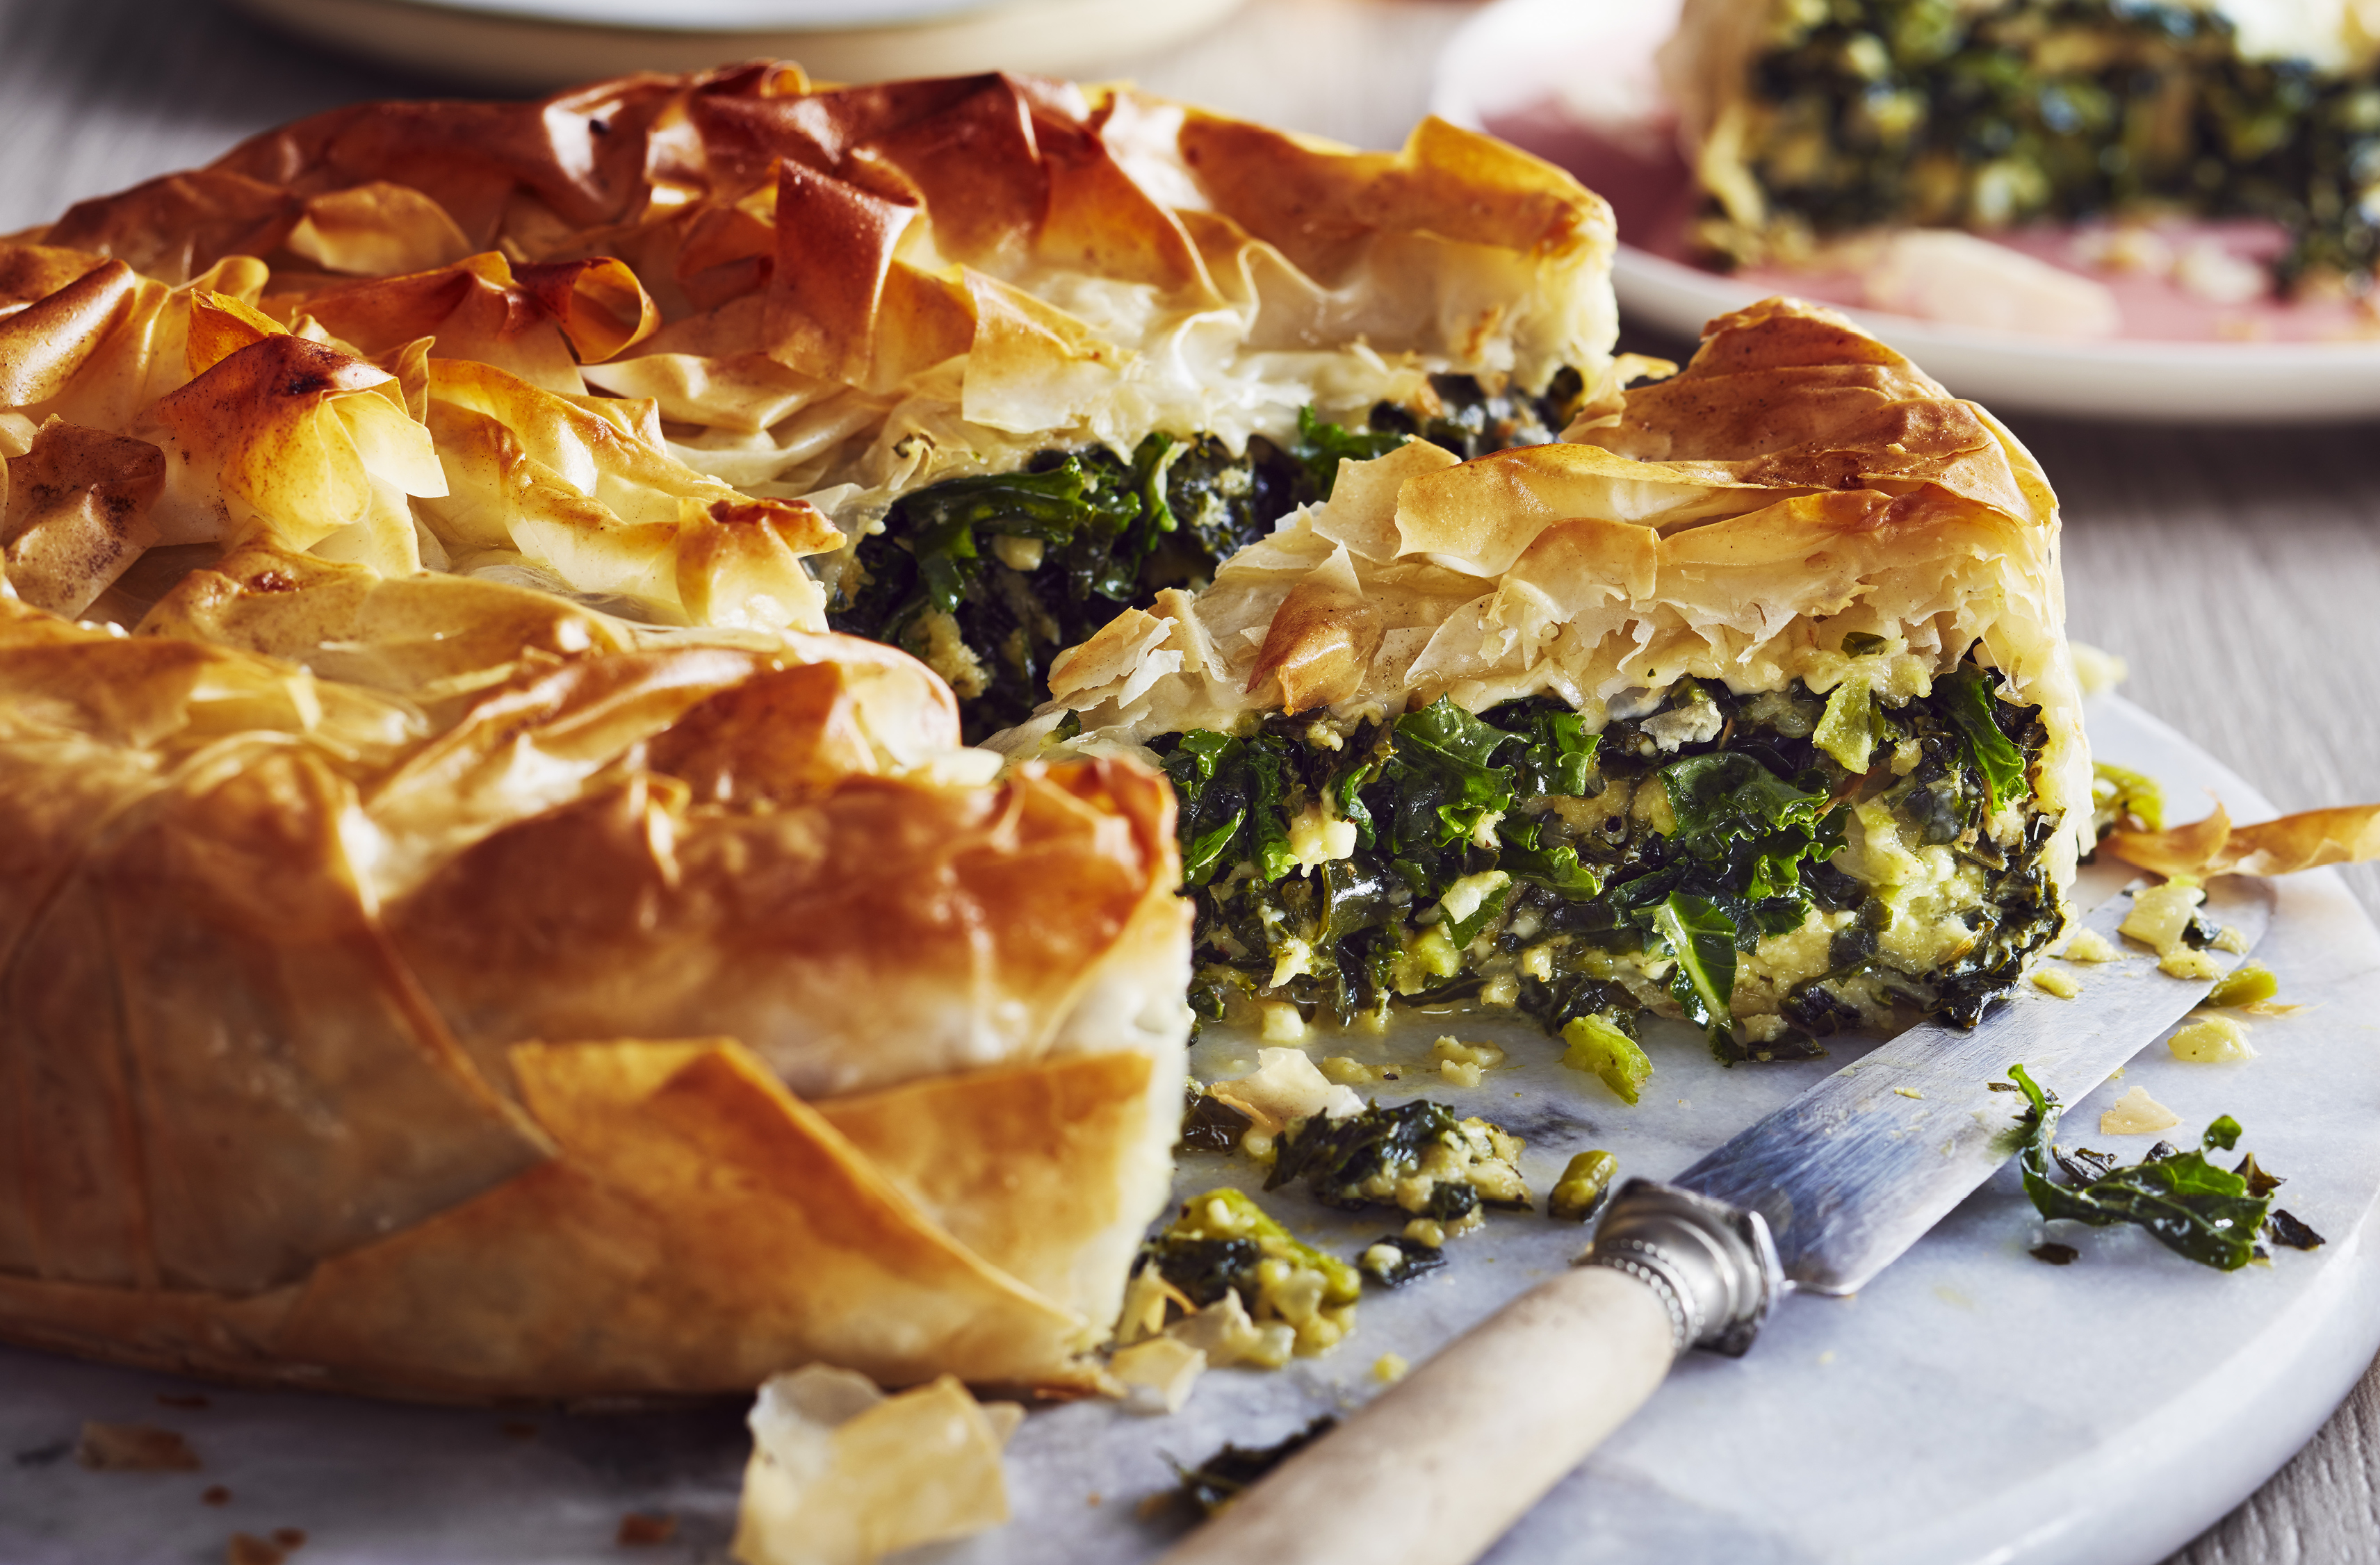 Flaky pastry encloses kale and feta in a pie shape, with one slice cut out